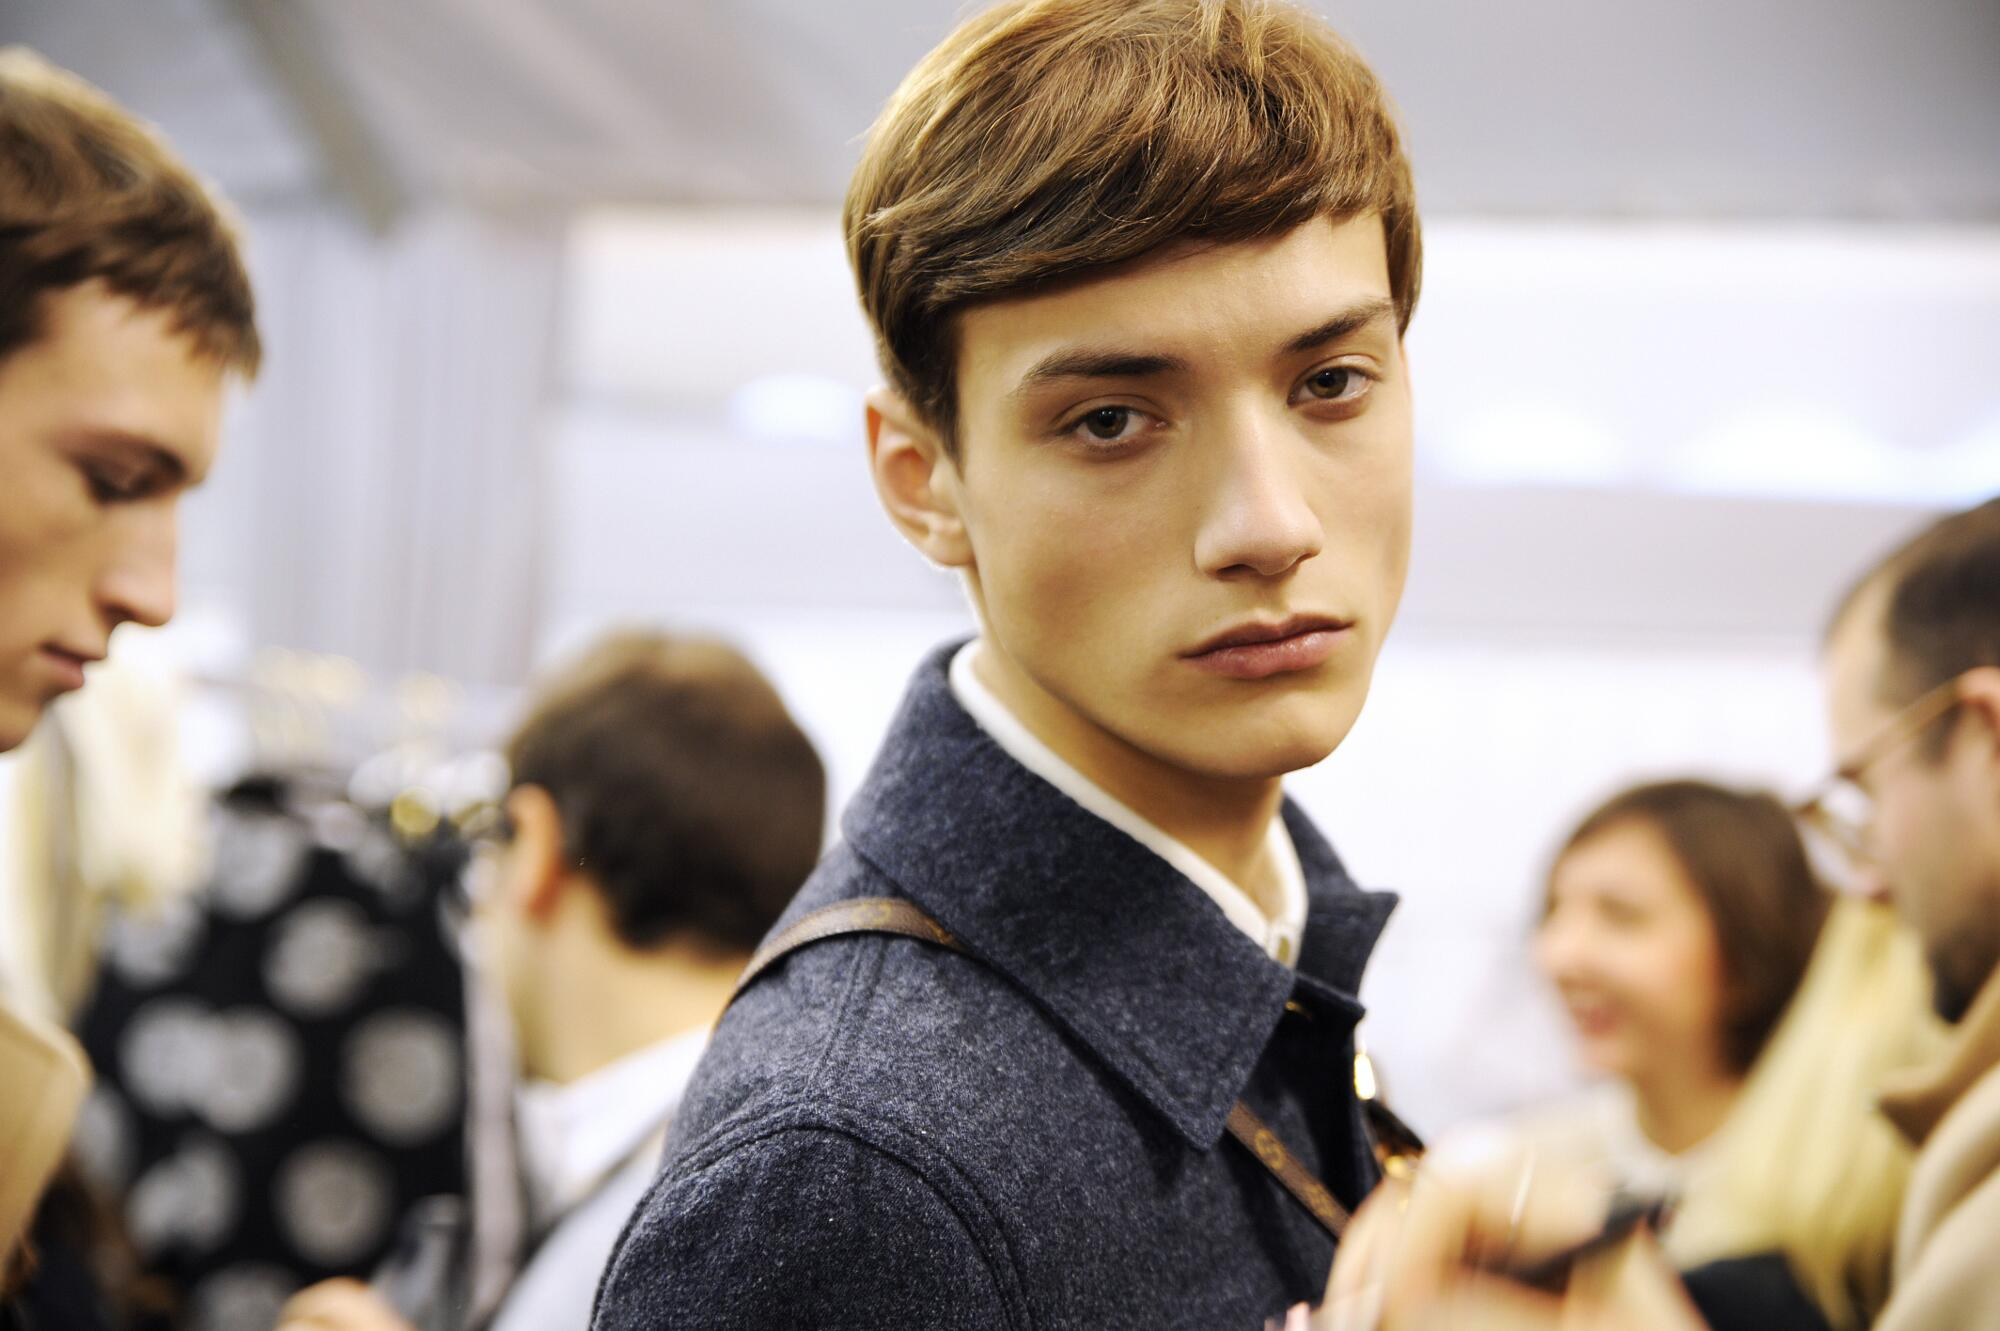 Backstage Man Model Louis Vuitton Winter 2015 Paris